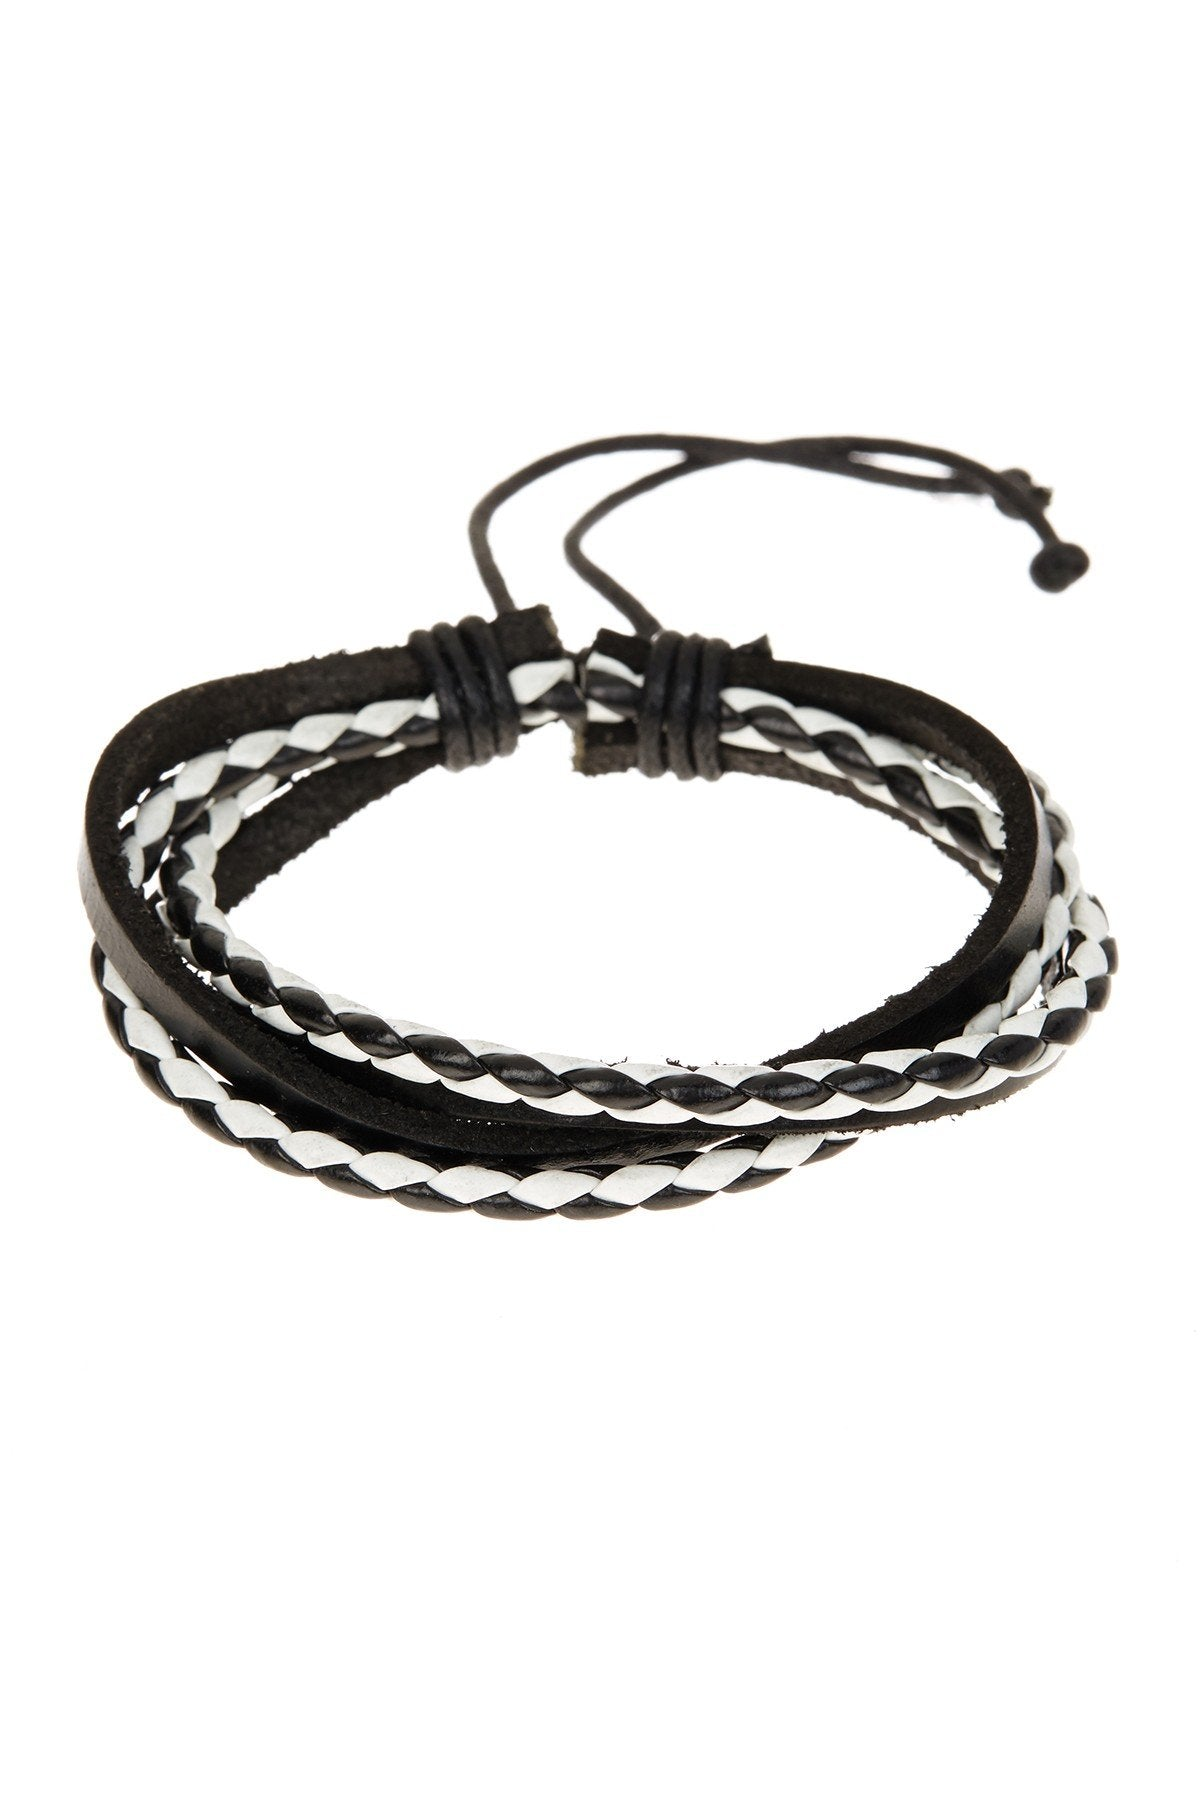 Black & White Adjustable Leather Bracelet